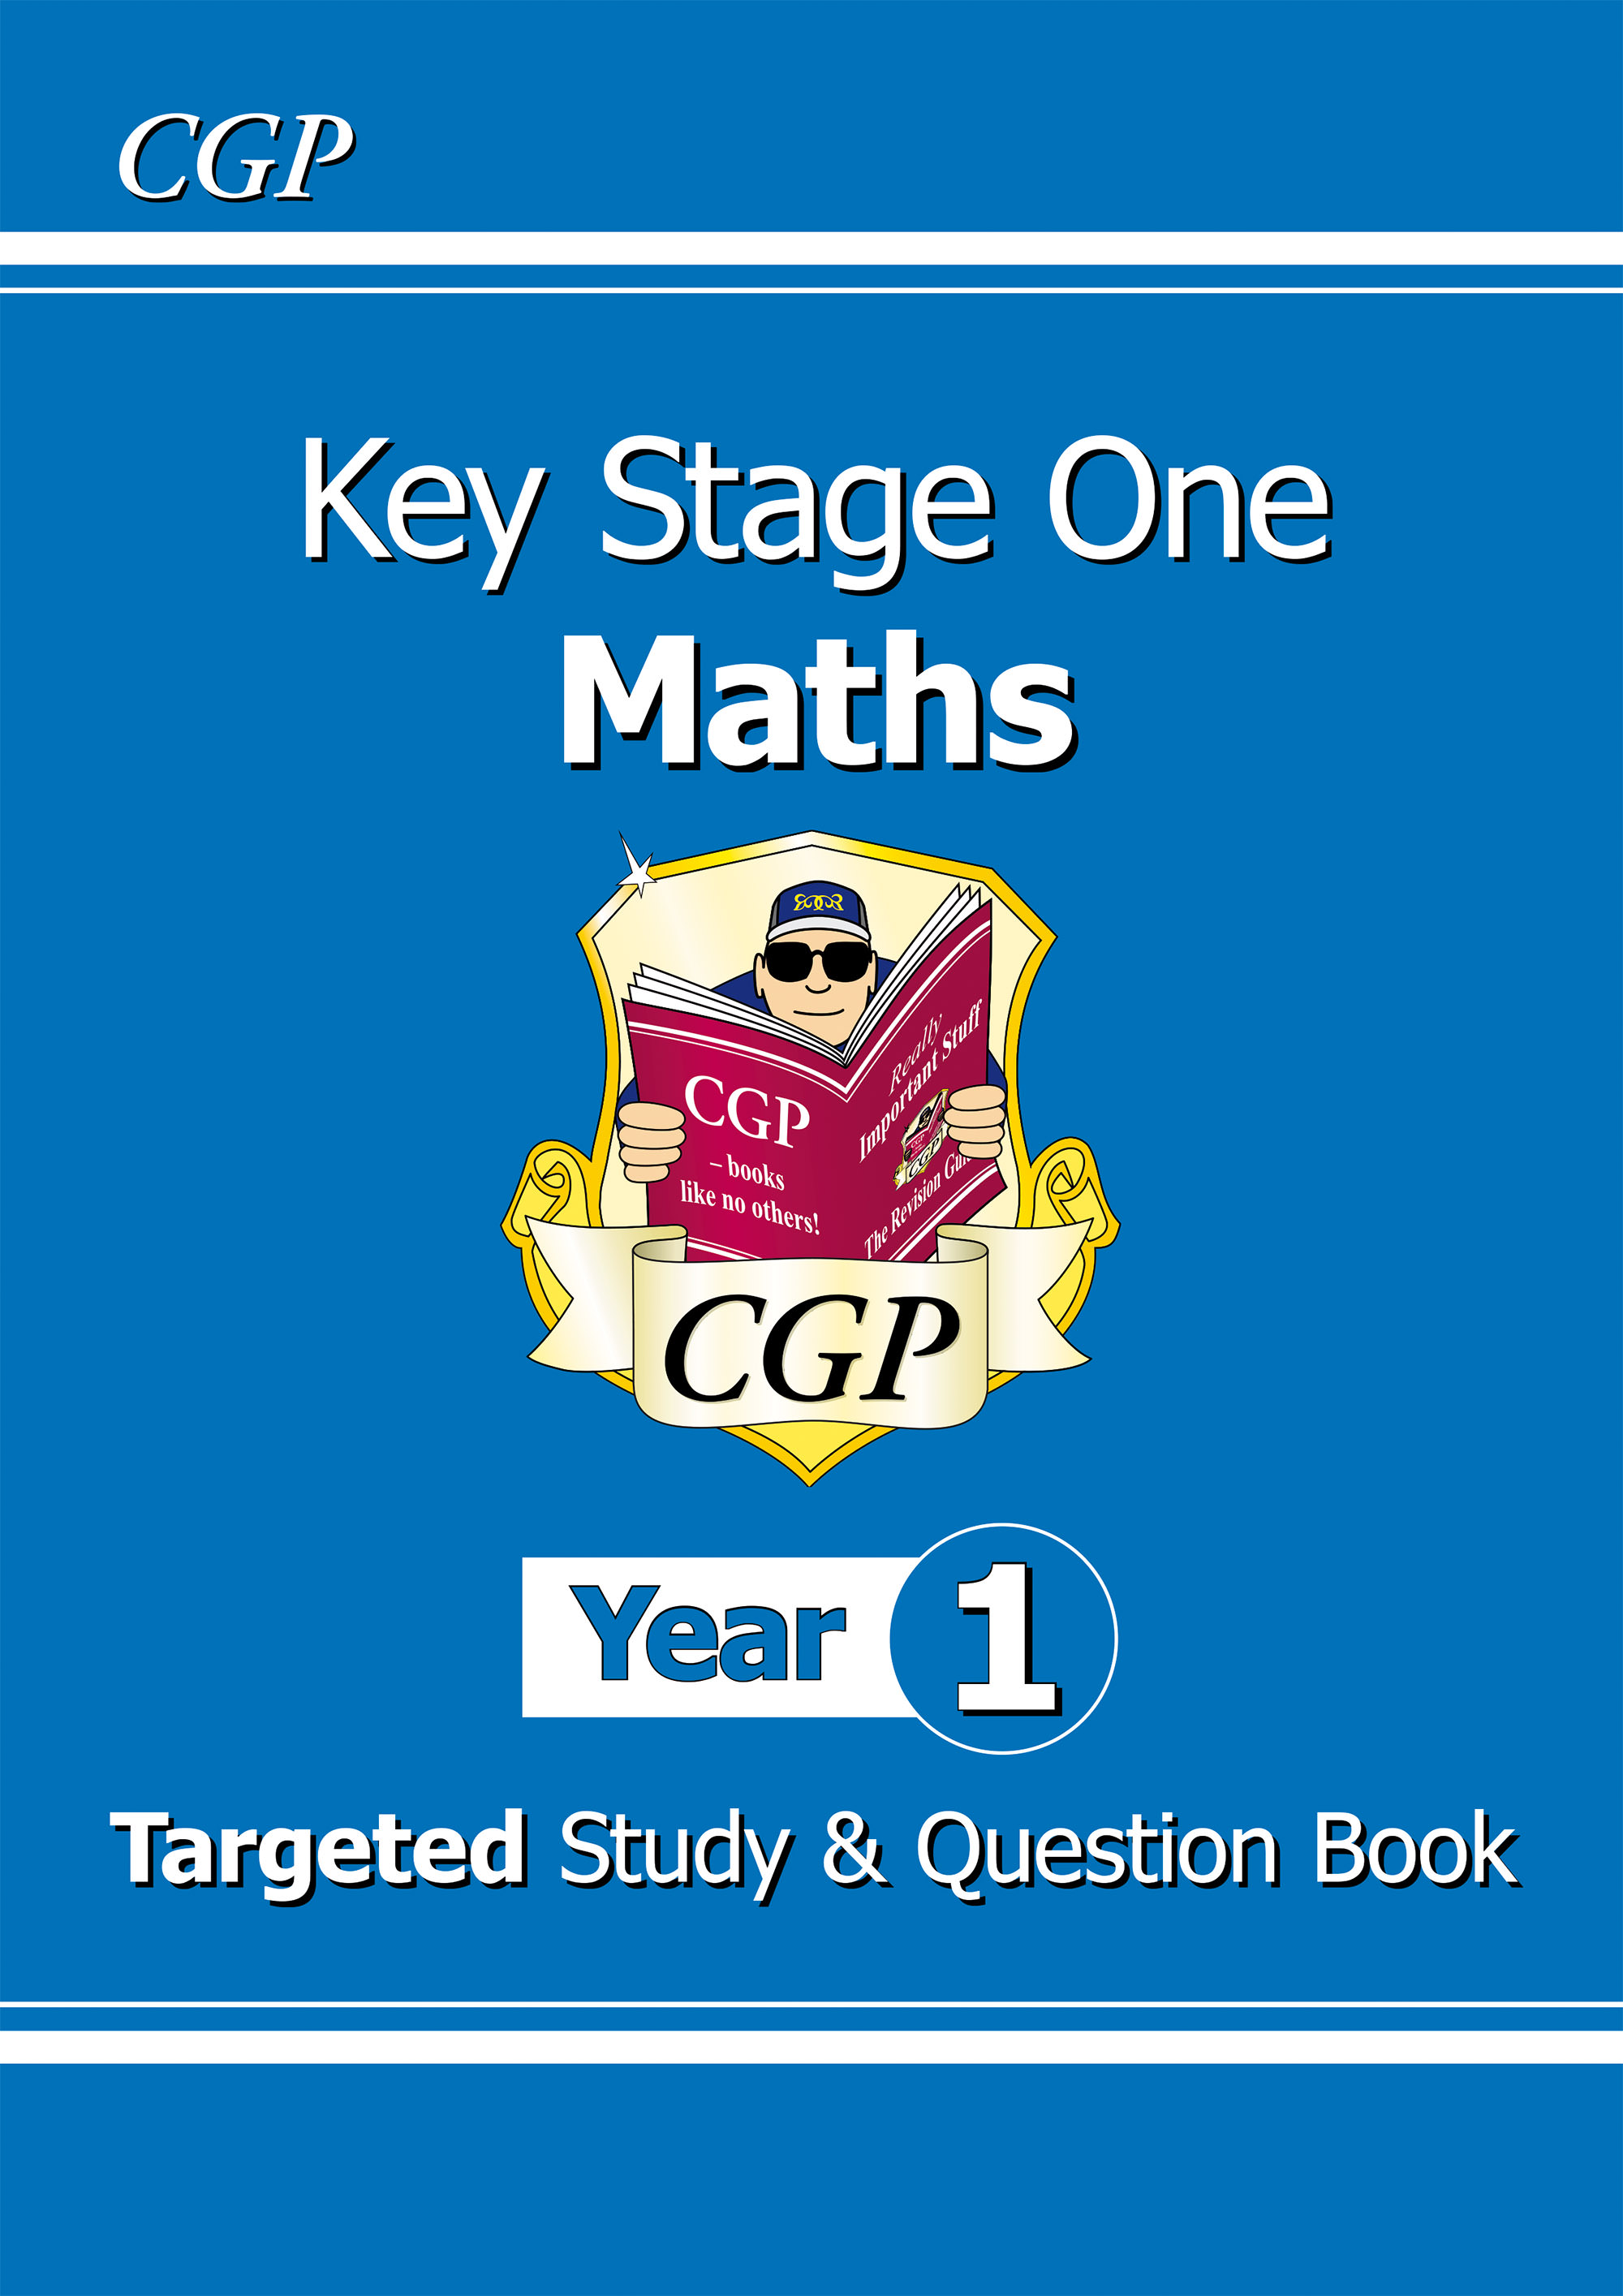 M1R11D - KS1 Maths Targeted Study & Question Book - Year 1 Online Edition